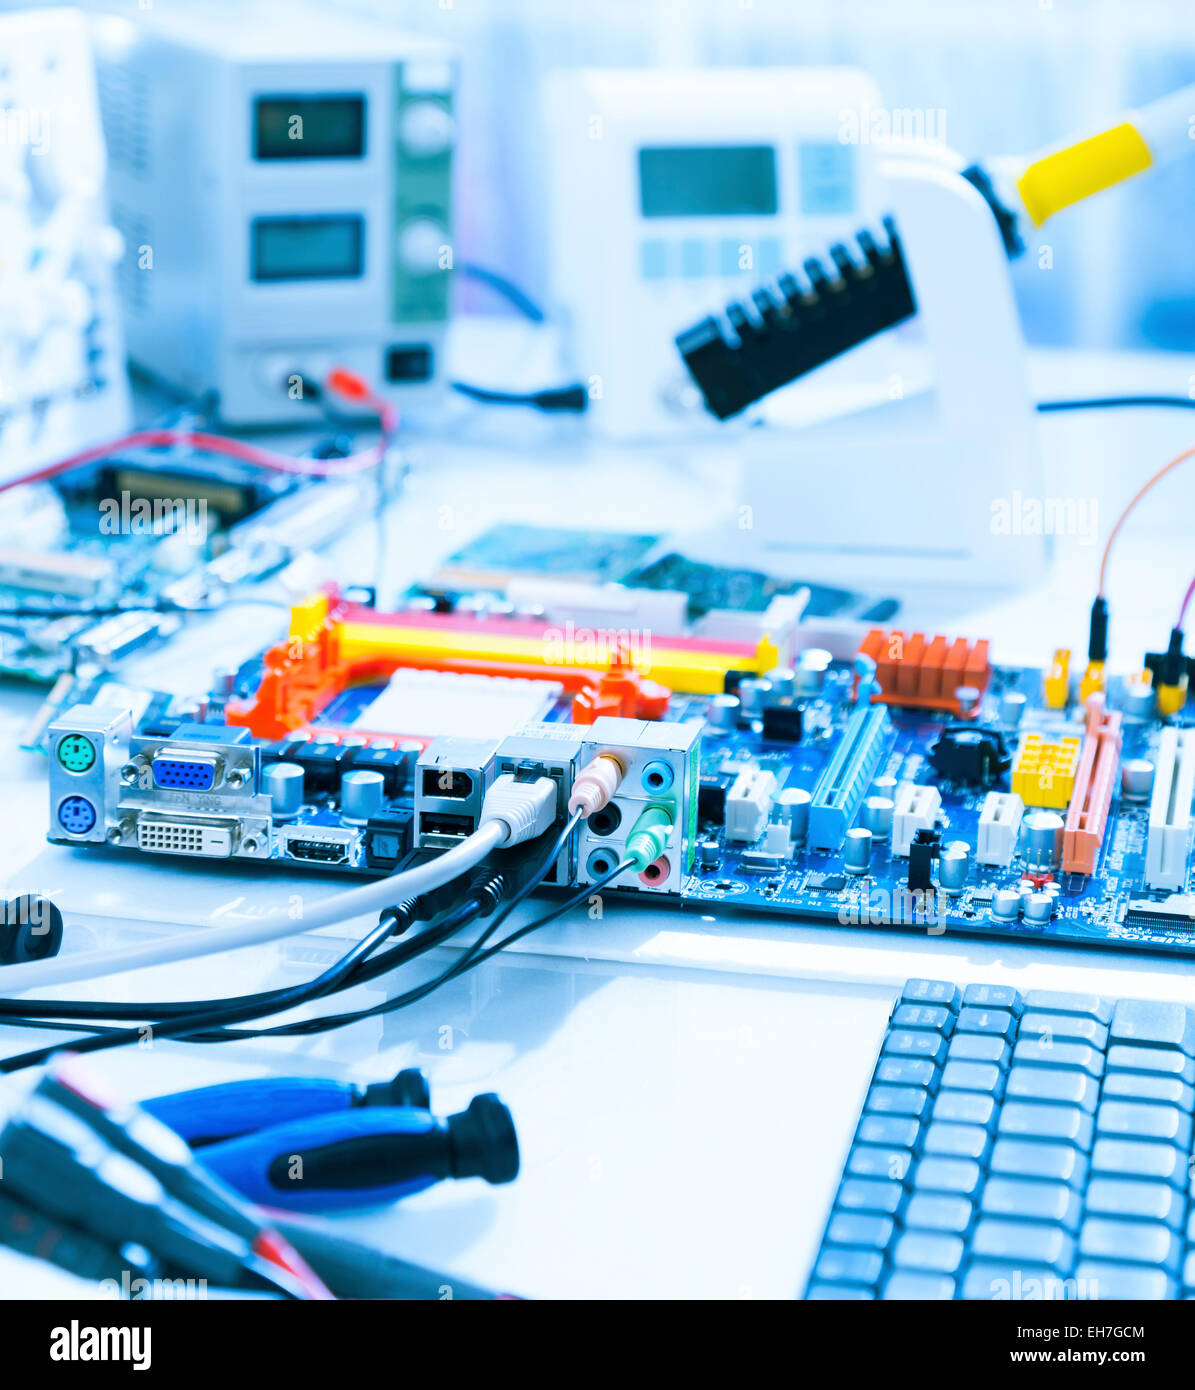 Computers in a repair workshop - Stock Image